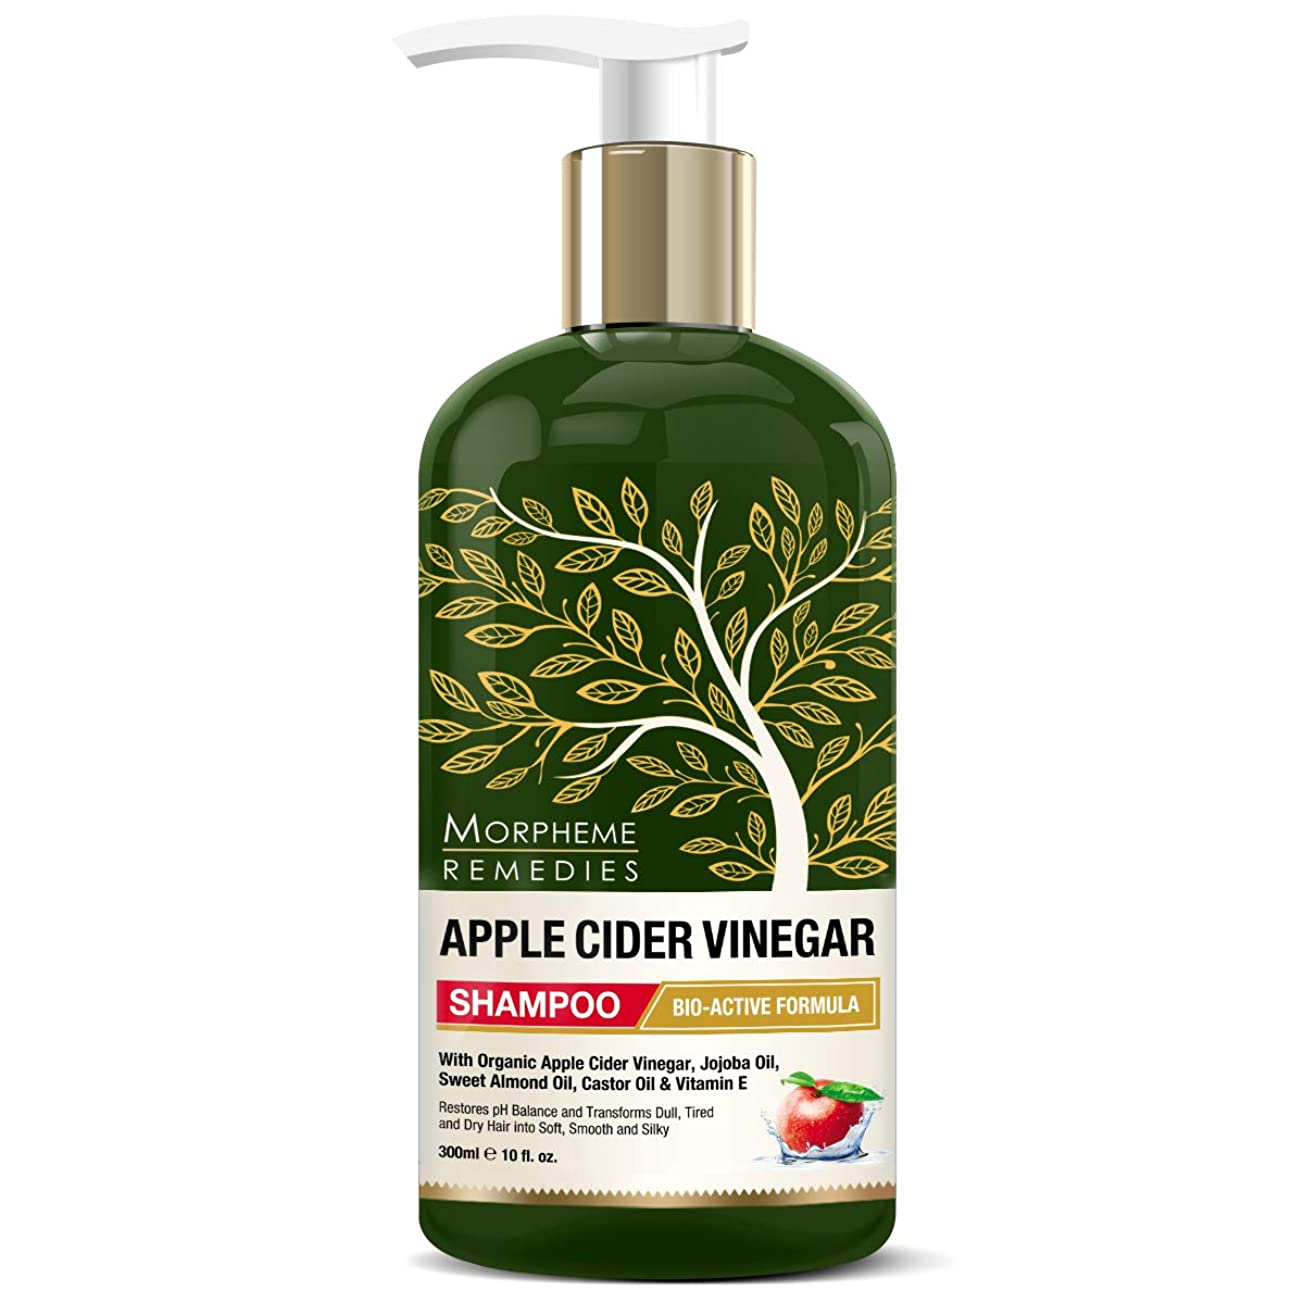 現代おじさん同化Morpheme Remedies Apple Cider Vinegar Shampoo (No Sulfate, Paraben or Silicon), 300ml - Transforms Dull, Tired & Dry Hair into Soft, Smooth & Silky